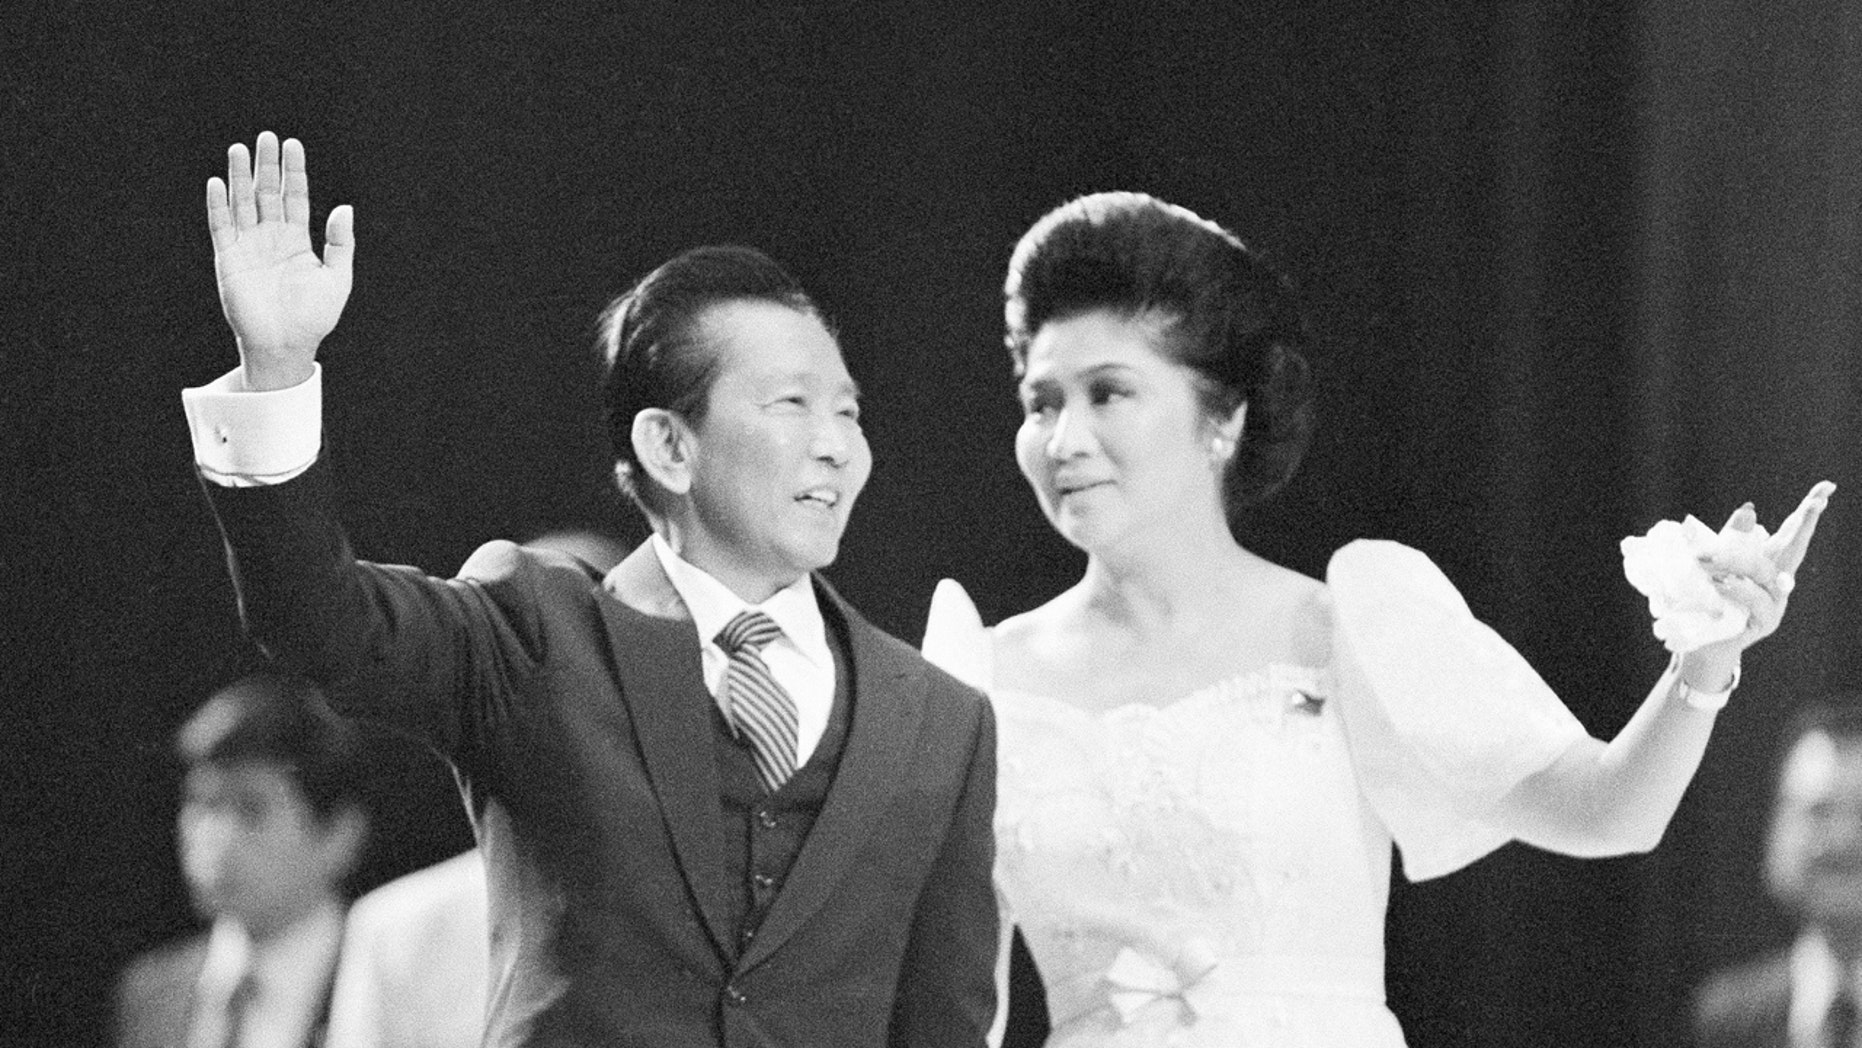 In this Sept. 26, 1982 file photo, Philippine President Ferdinand Marcos and First Lady Imelda Marcos appear at a rally in the Los Angeles Sports Arena.